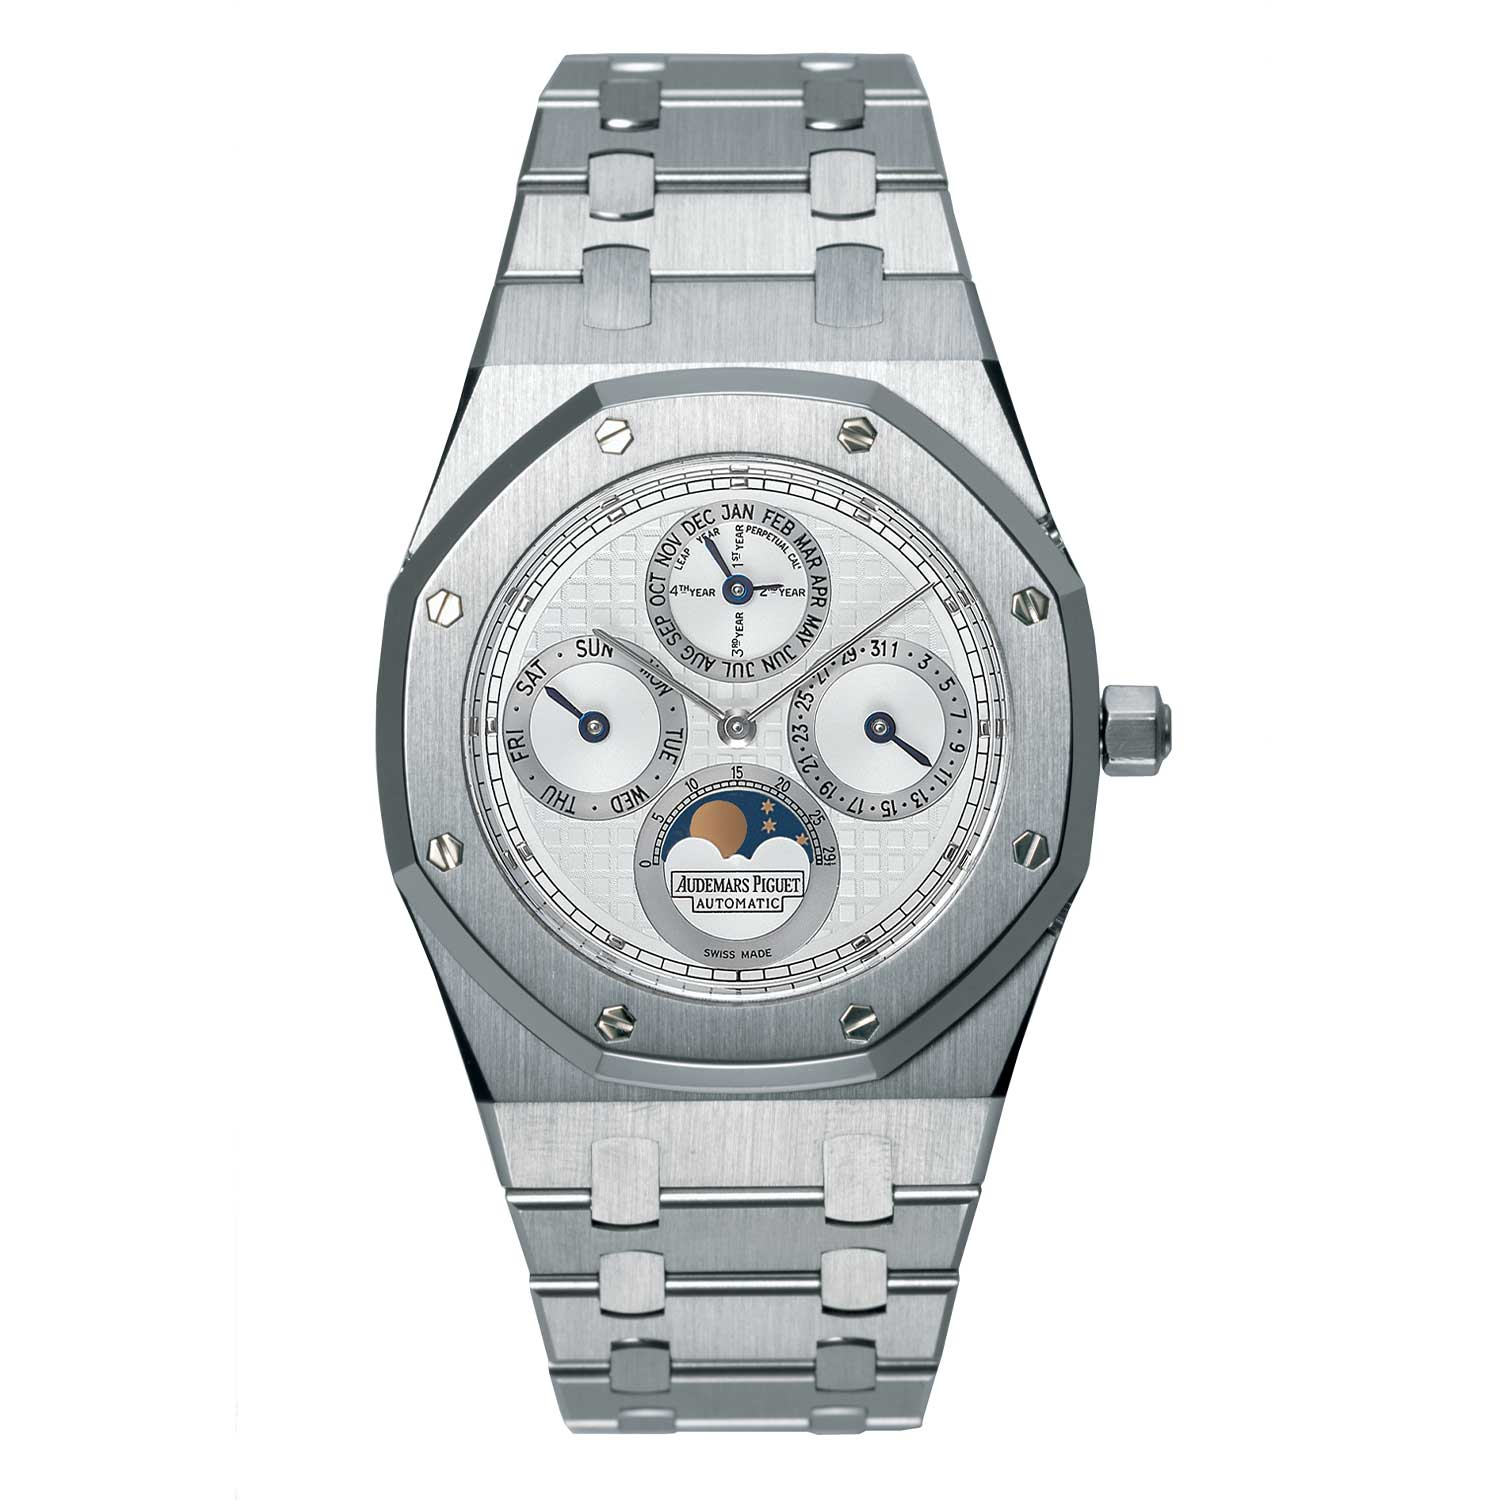 The Royal Oak Perpetual Calendar ref. 25820SP, in platinum and steel with a white dial